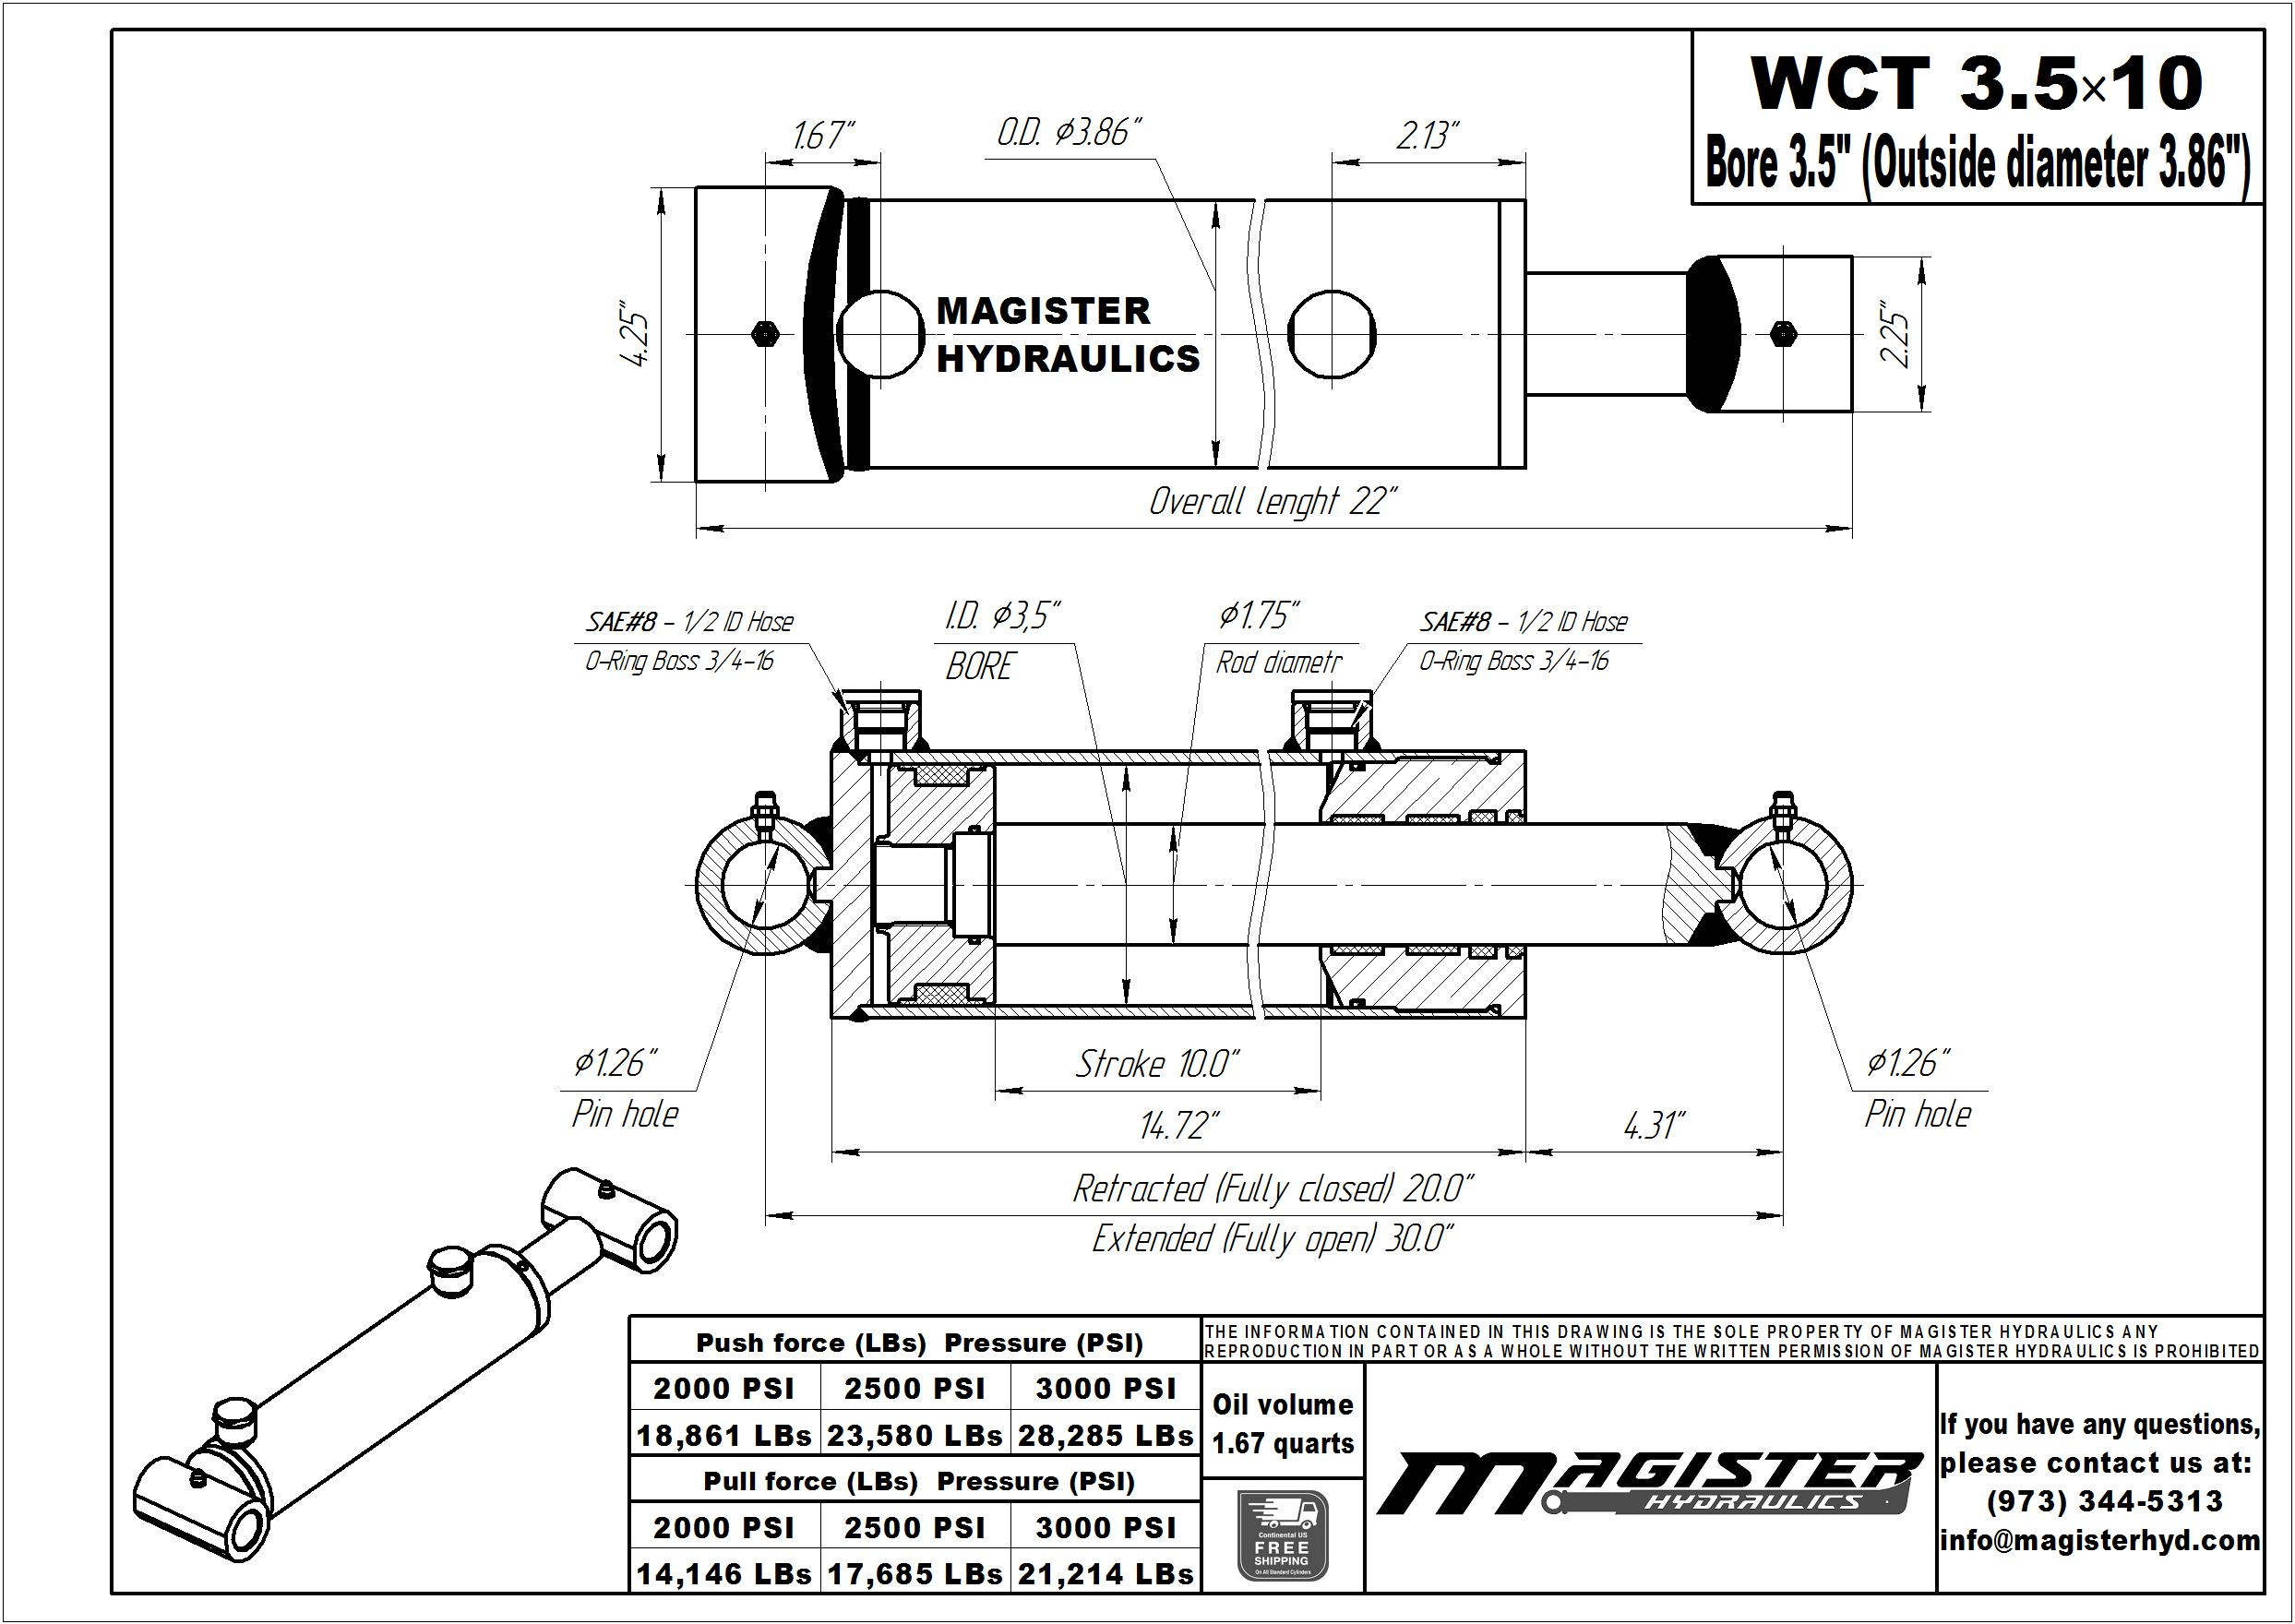 3.5 bore x 8 stroke hydraulic cylinder, welded cross tube double acting cylinder   Magister Hydraulics